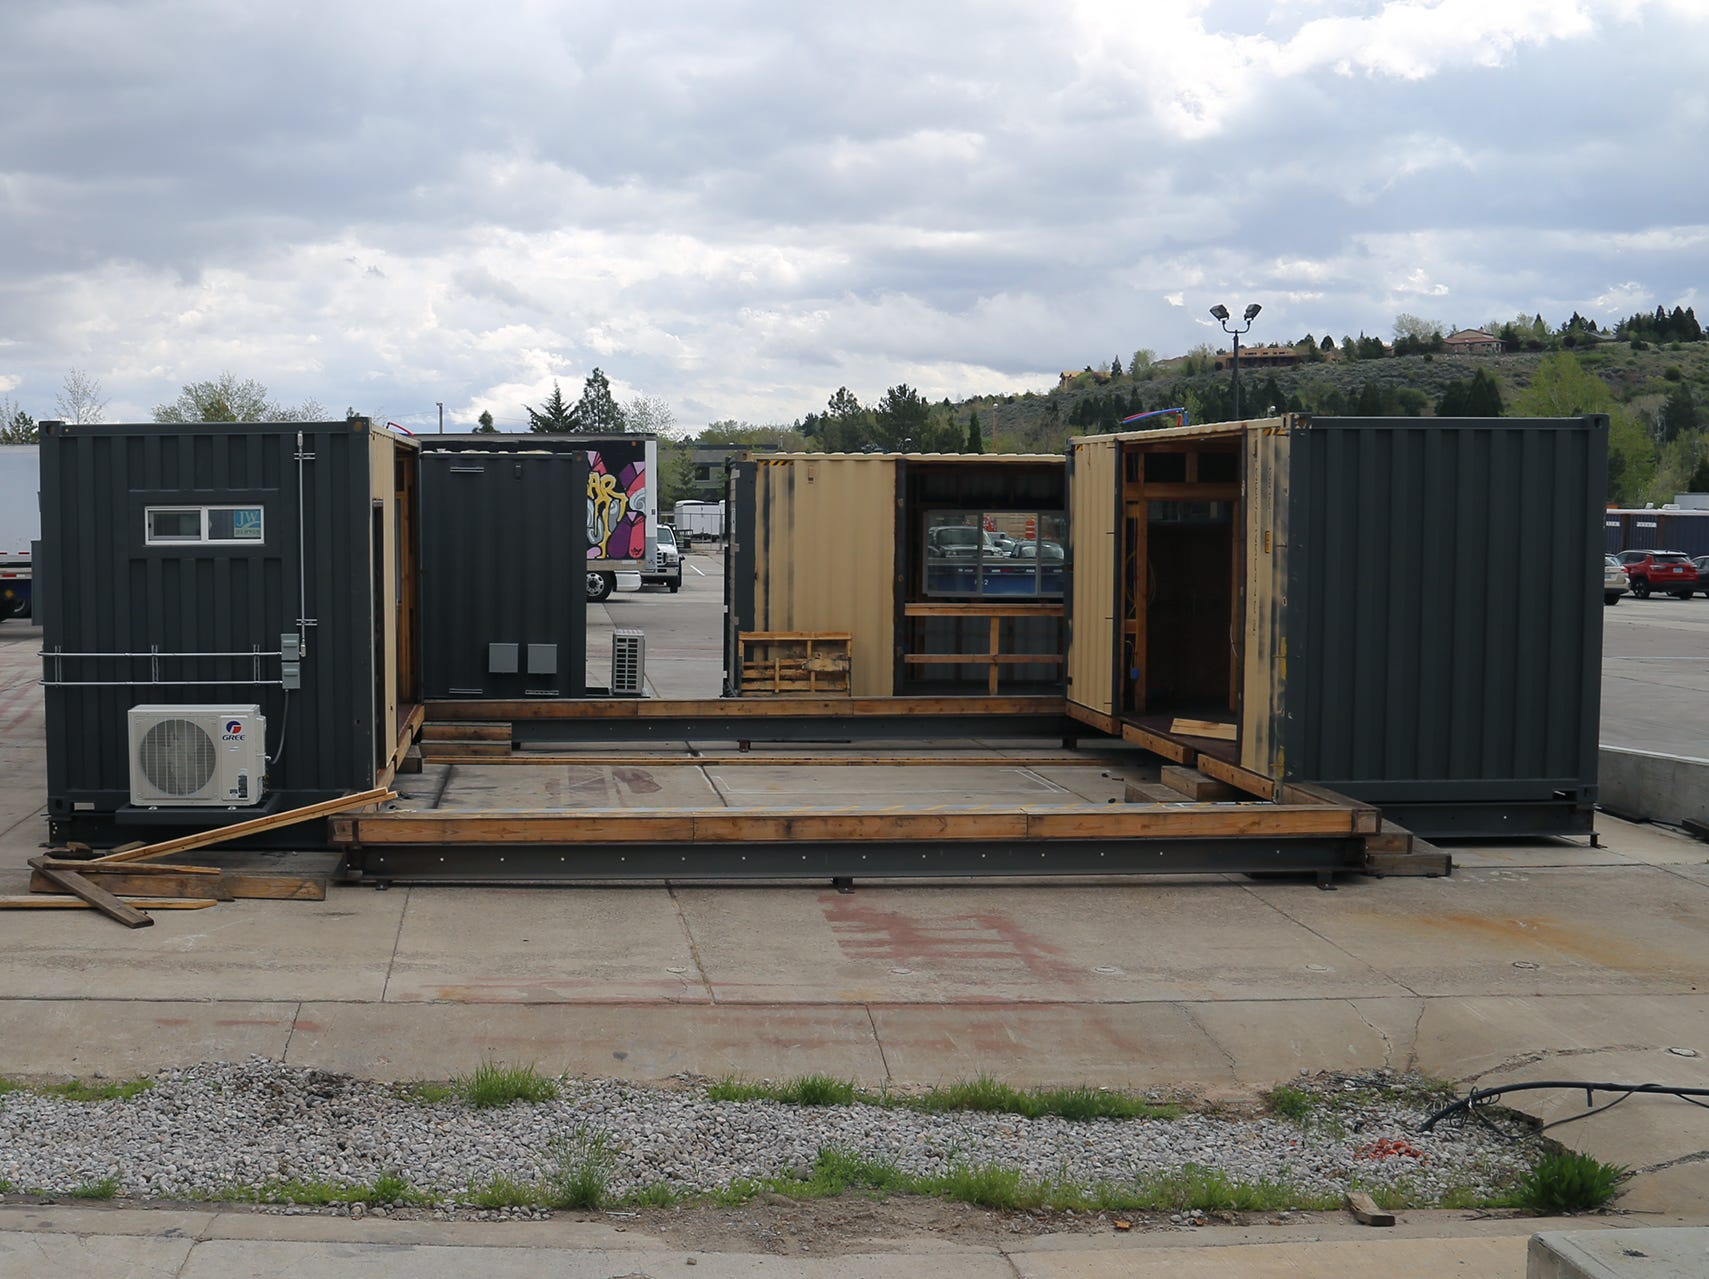 A shipping container-based housing concept is being assembled at Twisted Metal's yard in Reno on April 30, 2019.